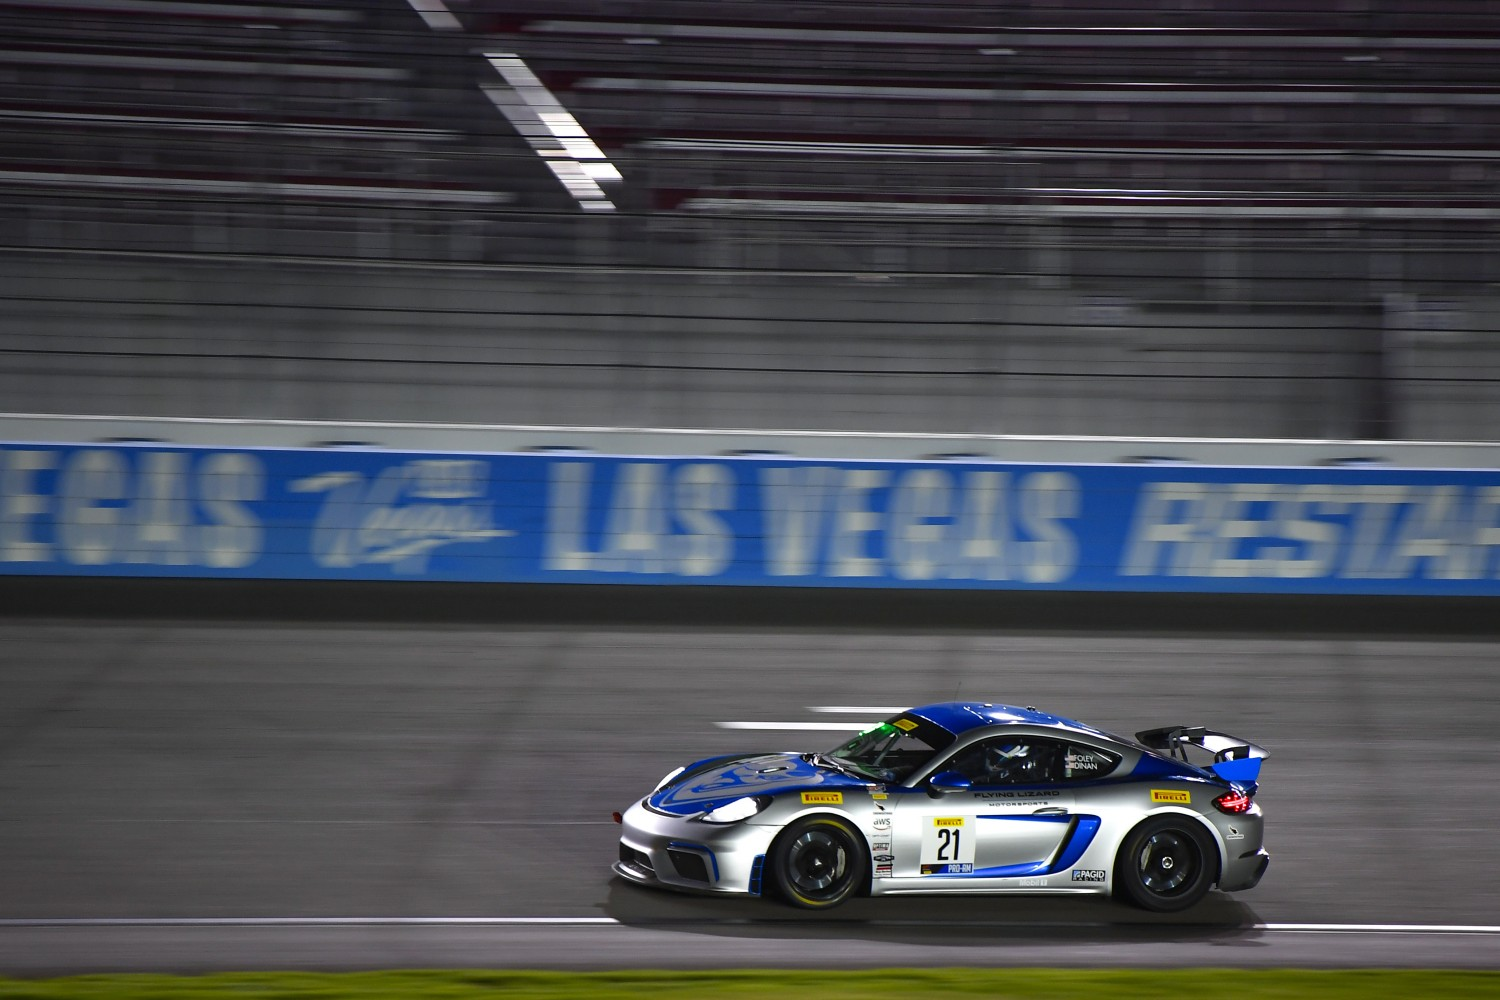 #21 Porsche 718 Cayman CS MR of Michael Dinan and Robby Foley with Flying Lizard Motorsports  2019 Blancpain GT World Challenge America - Las Vegas, Las Vegas NV | Gavin Baker/SRO